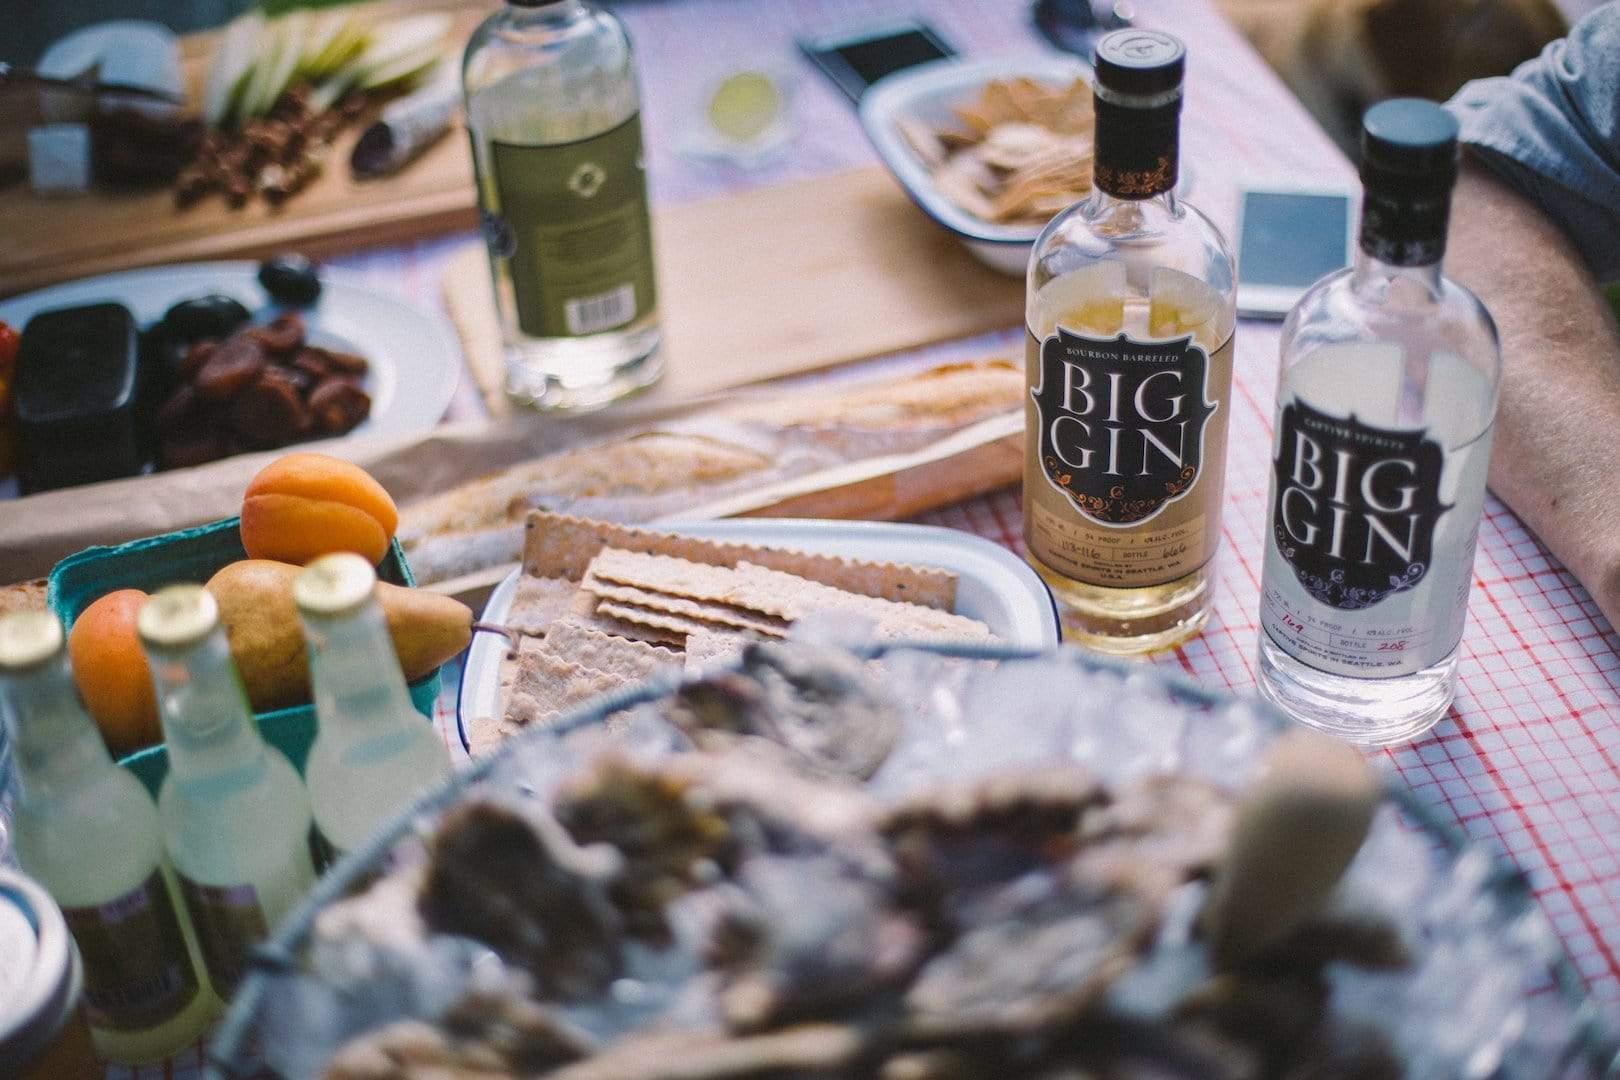 Tablescape with three bottles of Big Gin